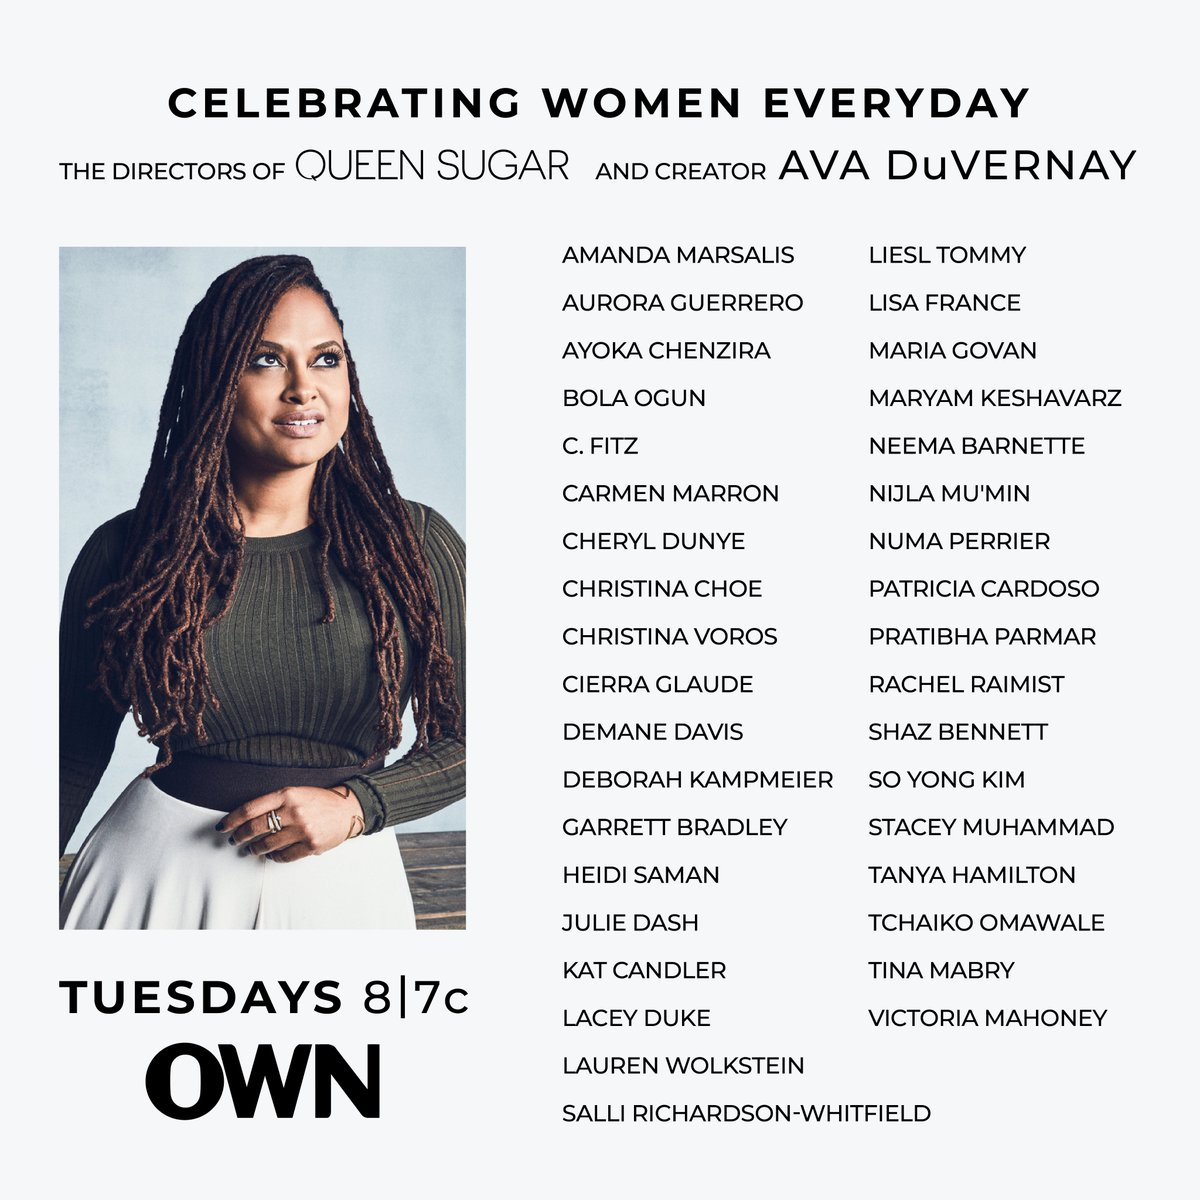 In honor of #InternationalWomensDay, we want to highlight the ALL FEMALE directing team behind ALL FIVE SEASONS of #QUEENSUGAR! 🙌🏾🖤